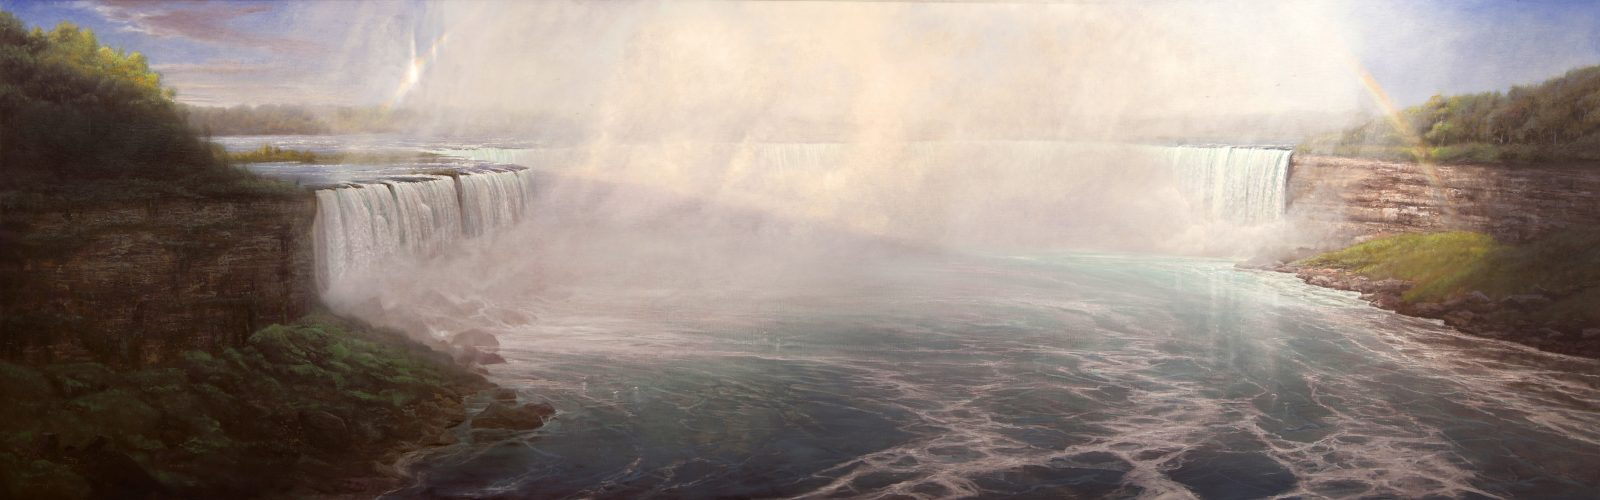 Thomas Kegler's painting 'Niagara, Psalms 84:11' is on view in Niagara University's Castellani Art Museum.